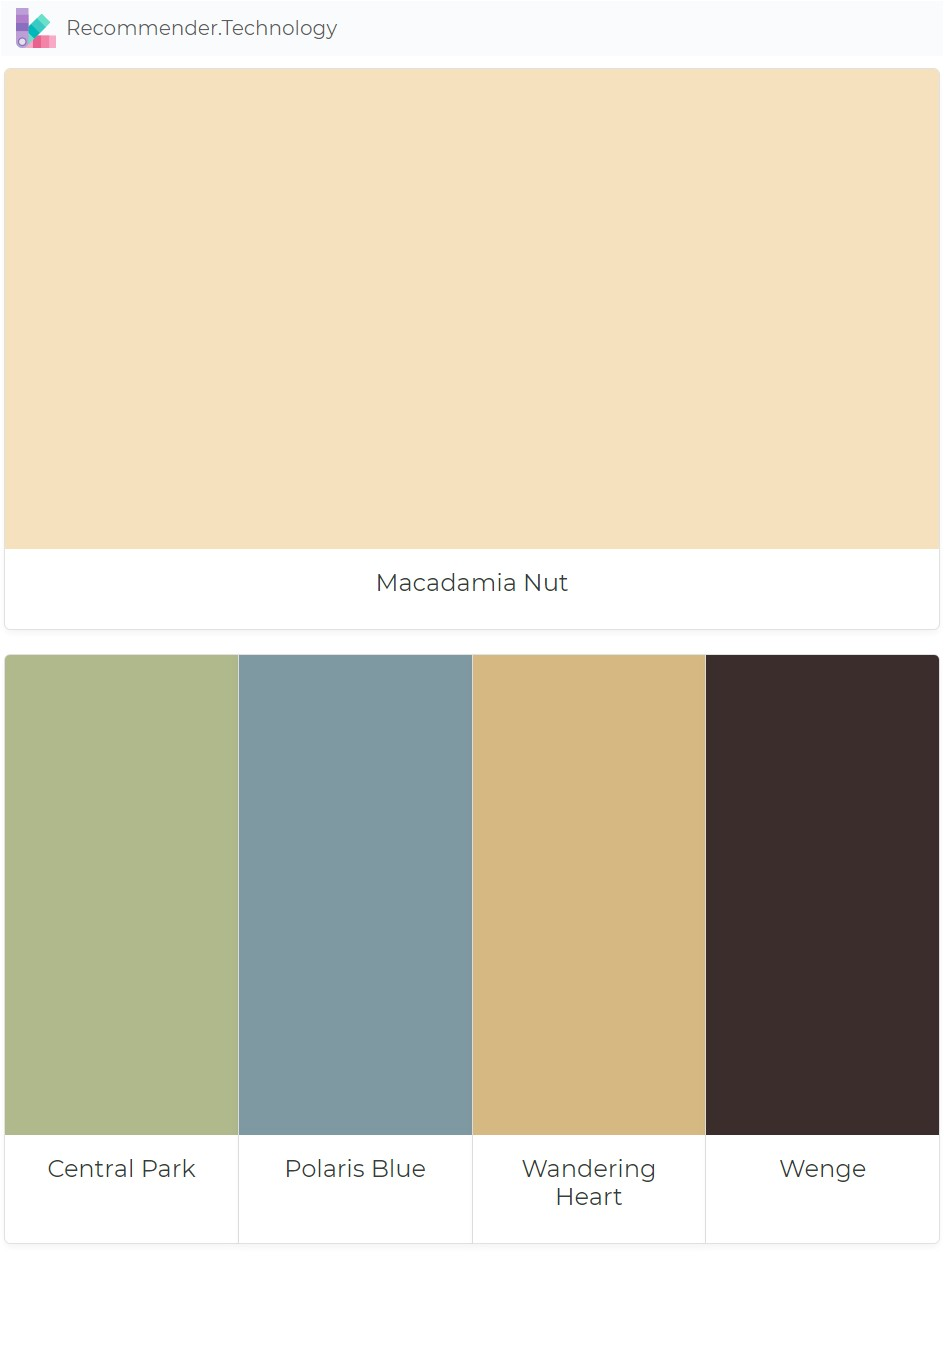 macadamia nut central park polaris blue wandering heart wenge paint color palettes